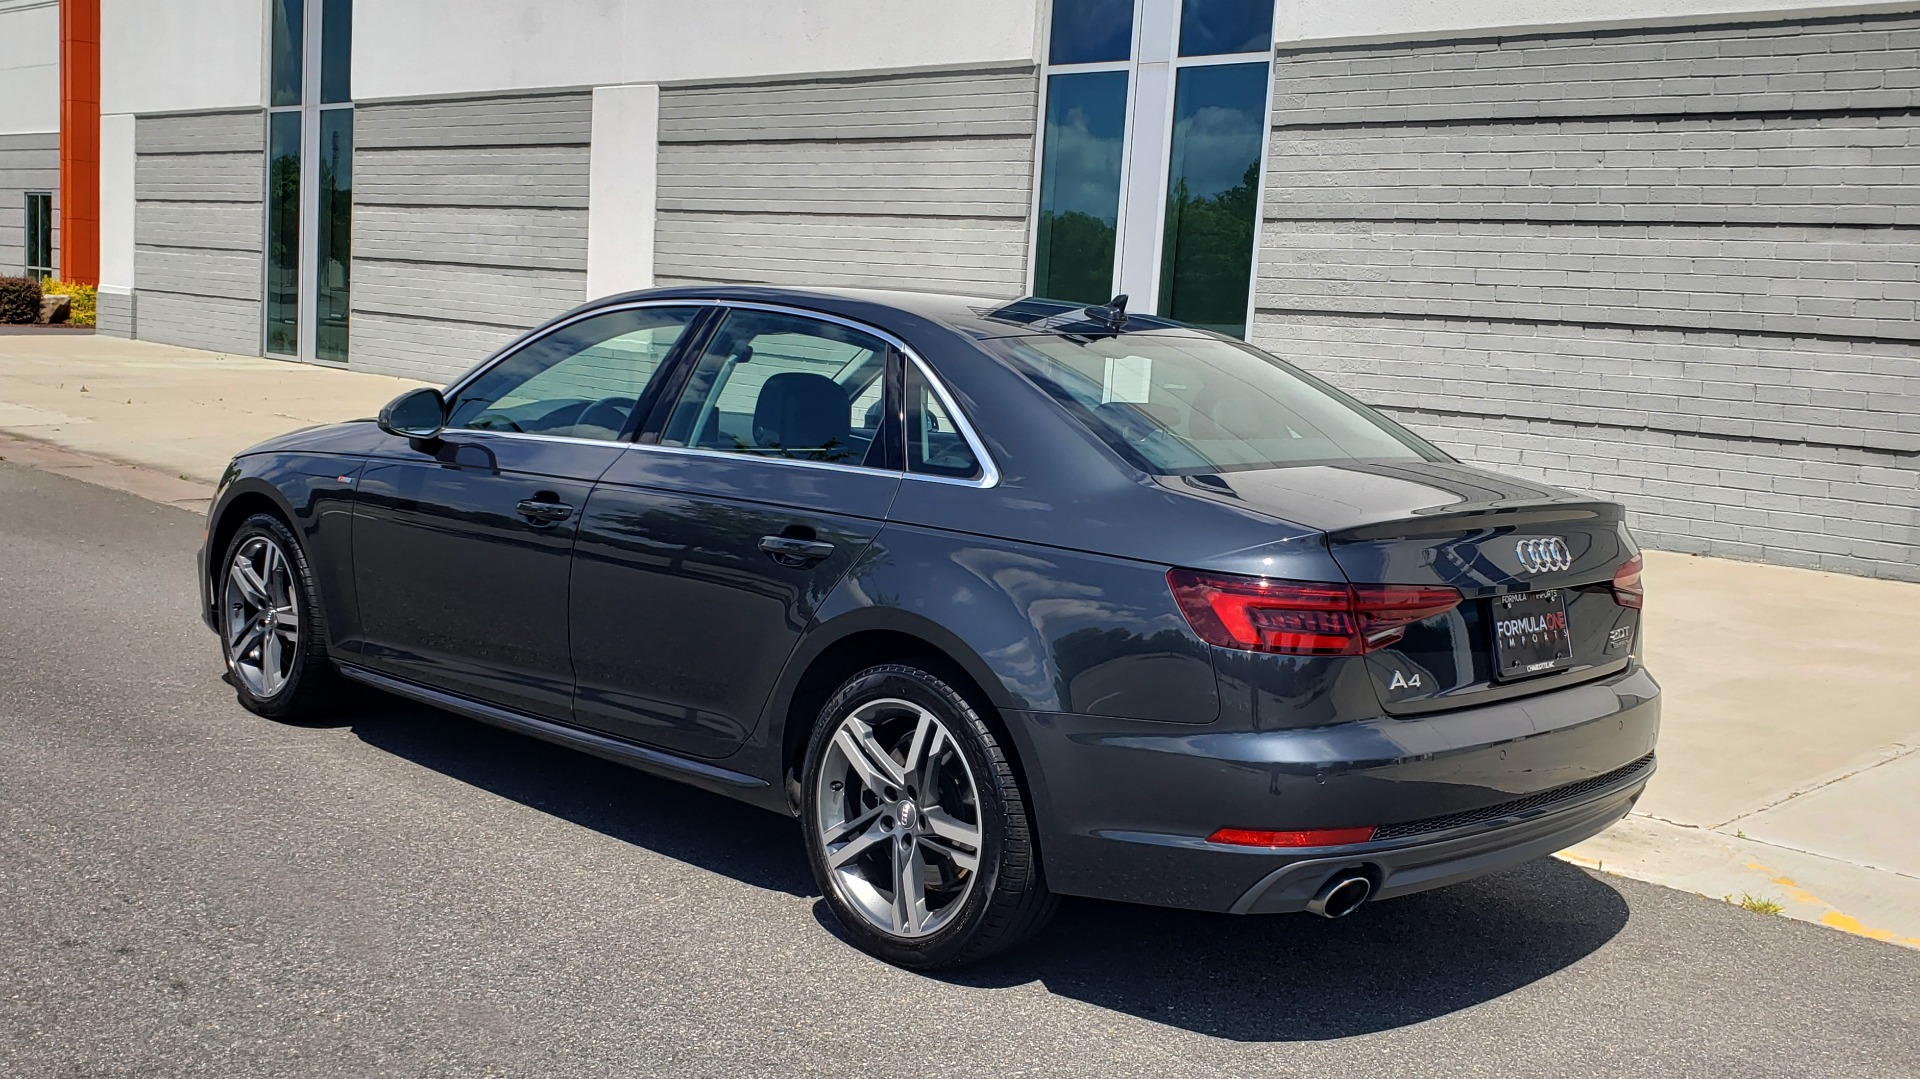 Used 2018 Audi A4 TECH PREMIUM PLUS / NAV / B&O SND / SUNROOF / CLD WTHR / REARVIEW for sale $28,595 at Formula Imports in Charlotte NC 28227 6